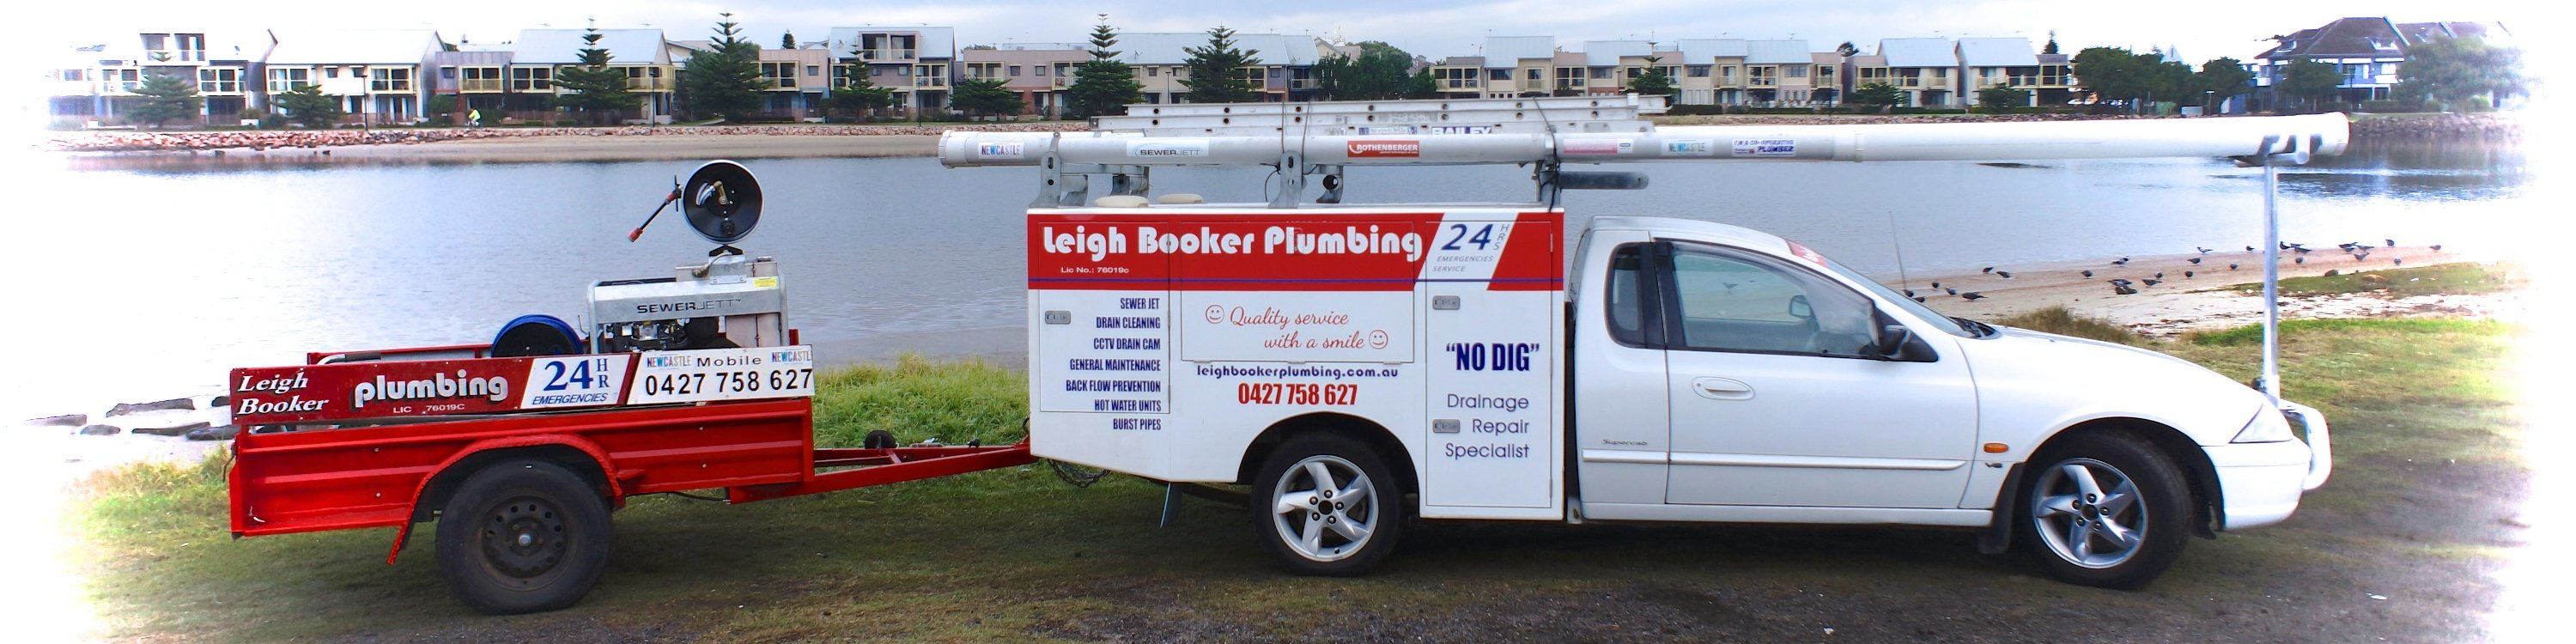 Find Local Plumbers & Gas Fitters In Newcastle Region, NSW